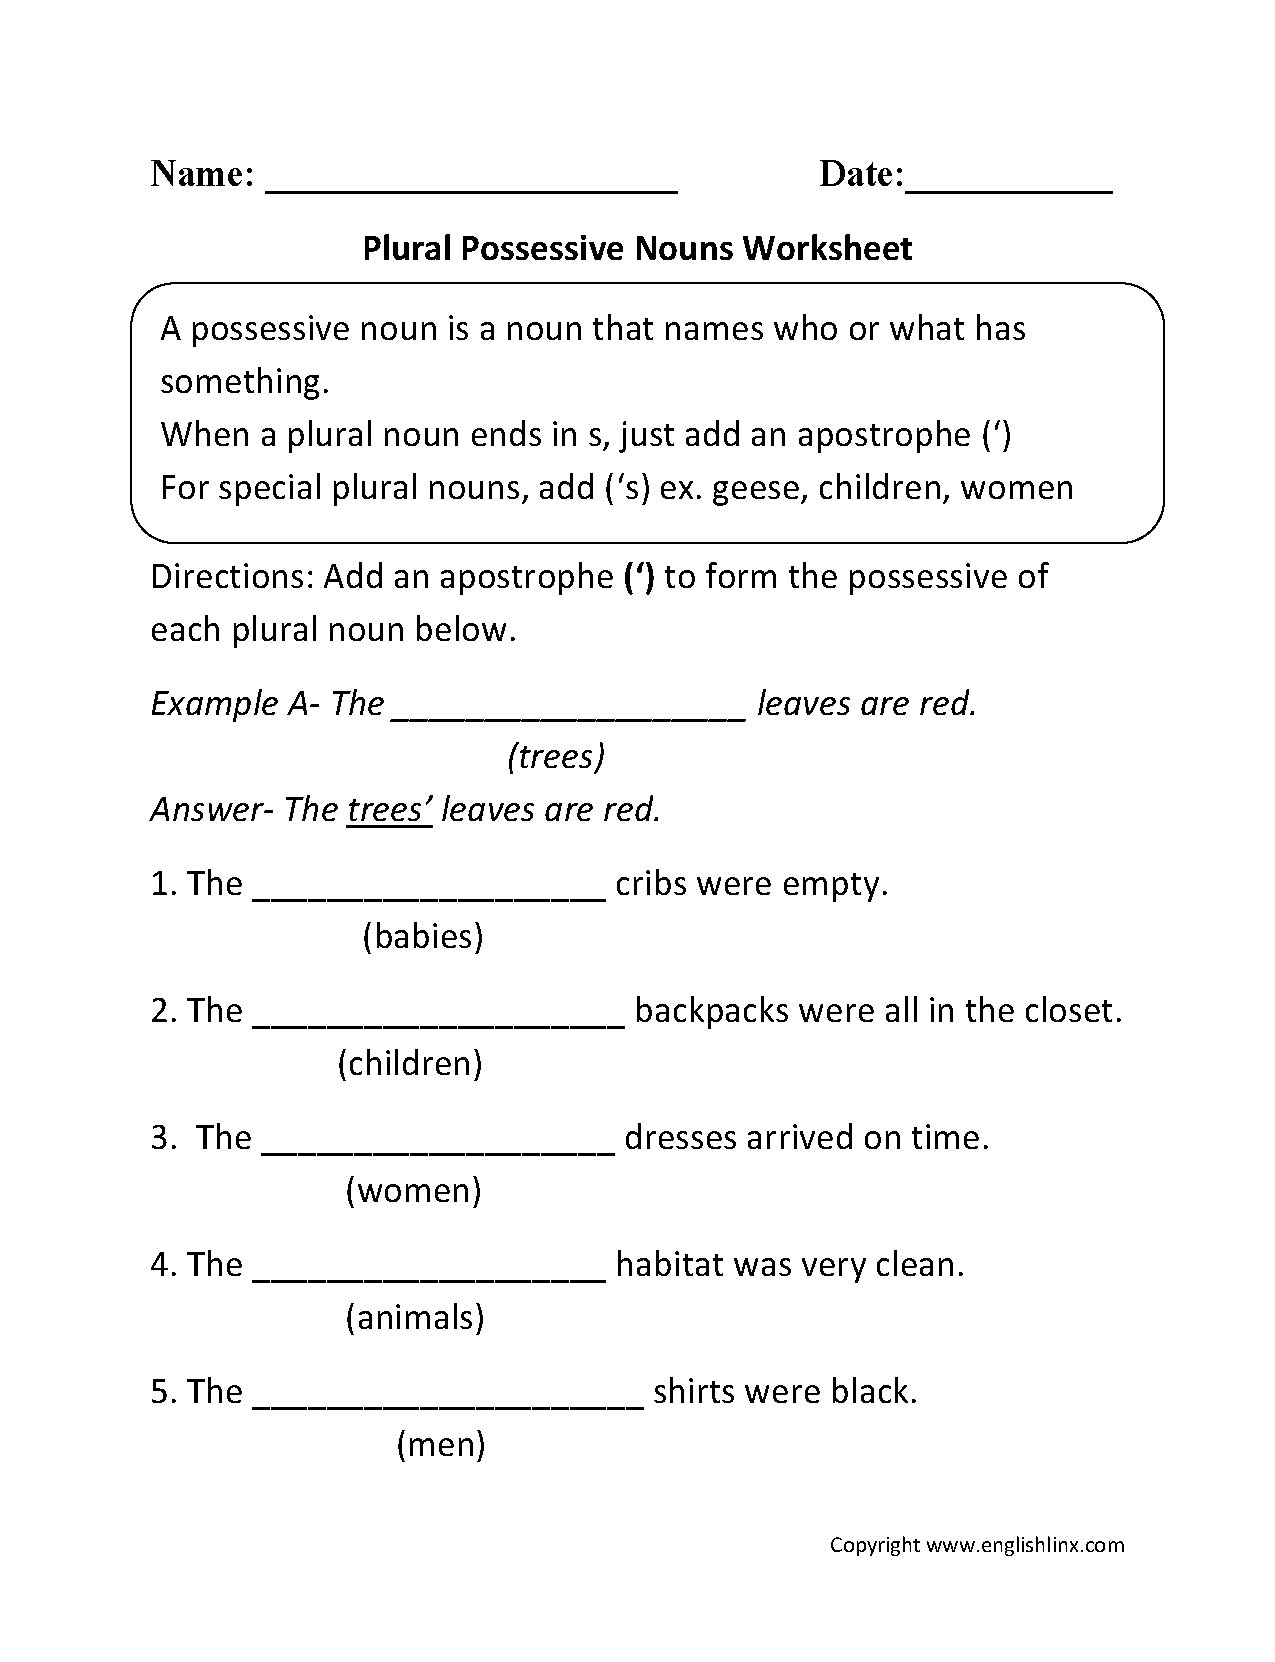 Aldiablosus  Marvelous Nouns Worksheets  Possessive Nouns Worksheets With Goodlooking Possessive Nouns Worksheets With Charming Az Handwriting Worksheets Also Multiplying Fractions Practice Worksheet In Addition Printable Math Multiplication Worksheets And Language Worksheets For Nd Grade As Well As Asymptotes Worksheet Additionally Graphing Coordinate Plane Worksheets From Englishlinxcom With Aldiablosus  Goodlooking Nouns Worksheets  Possessive Nouns Worksheets With Charming Possessive Nouns Worksheets And Marvelous Az Handwriting Worksheets Also Multiplying Fractions Practice Worksheet In Addition Printable Math Multiplication Worksheets From Englishlinxcom